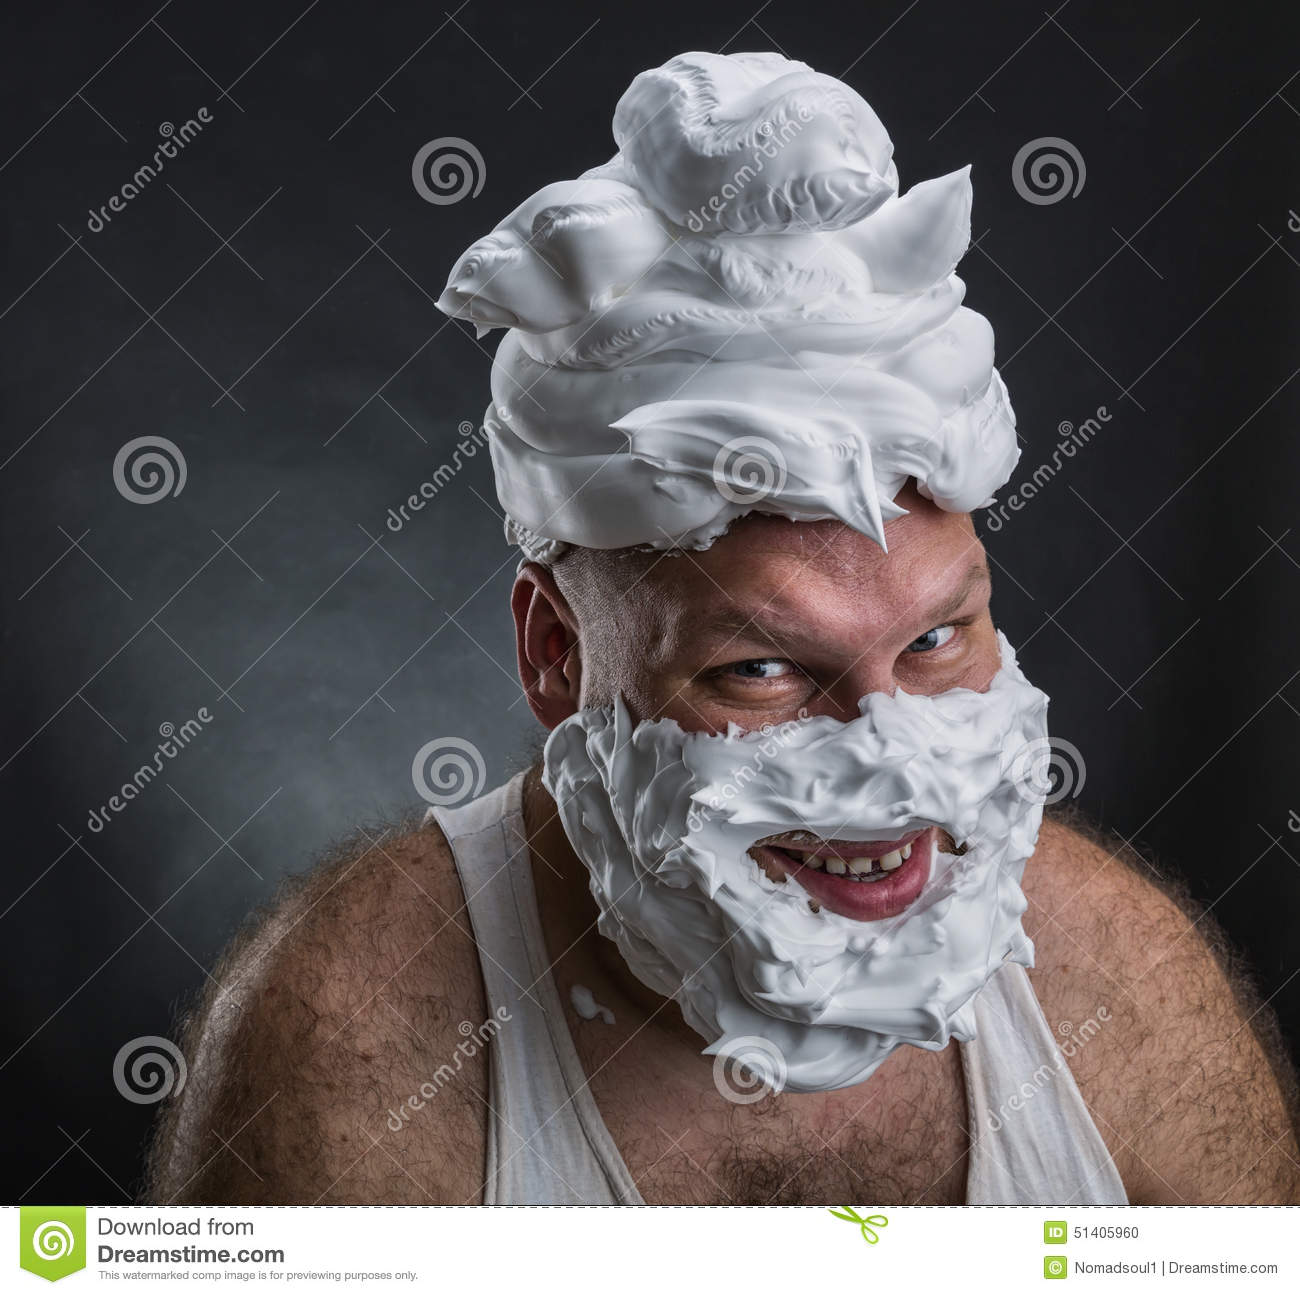 how to put shaving cream on face